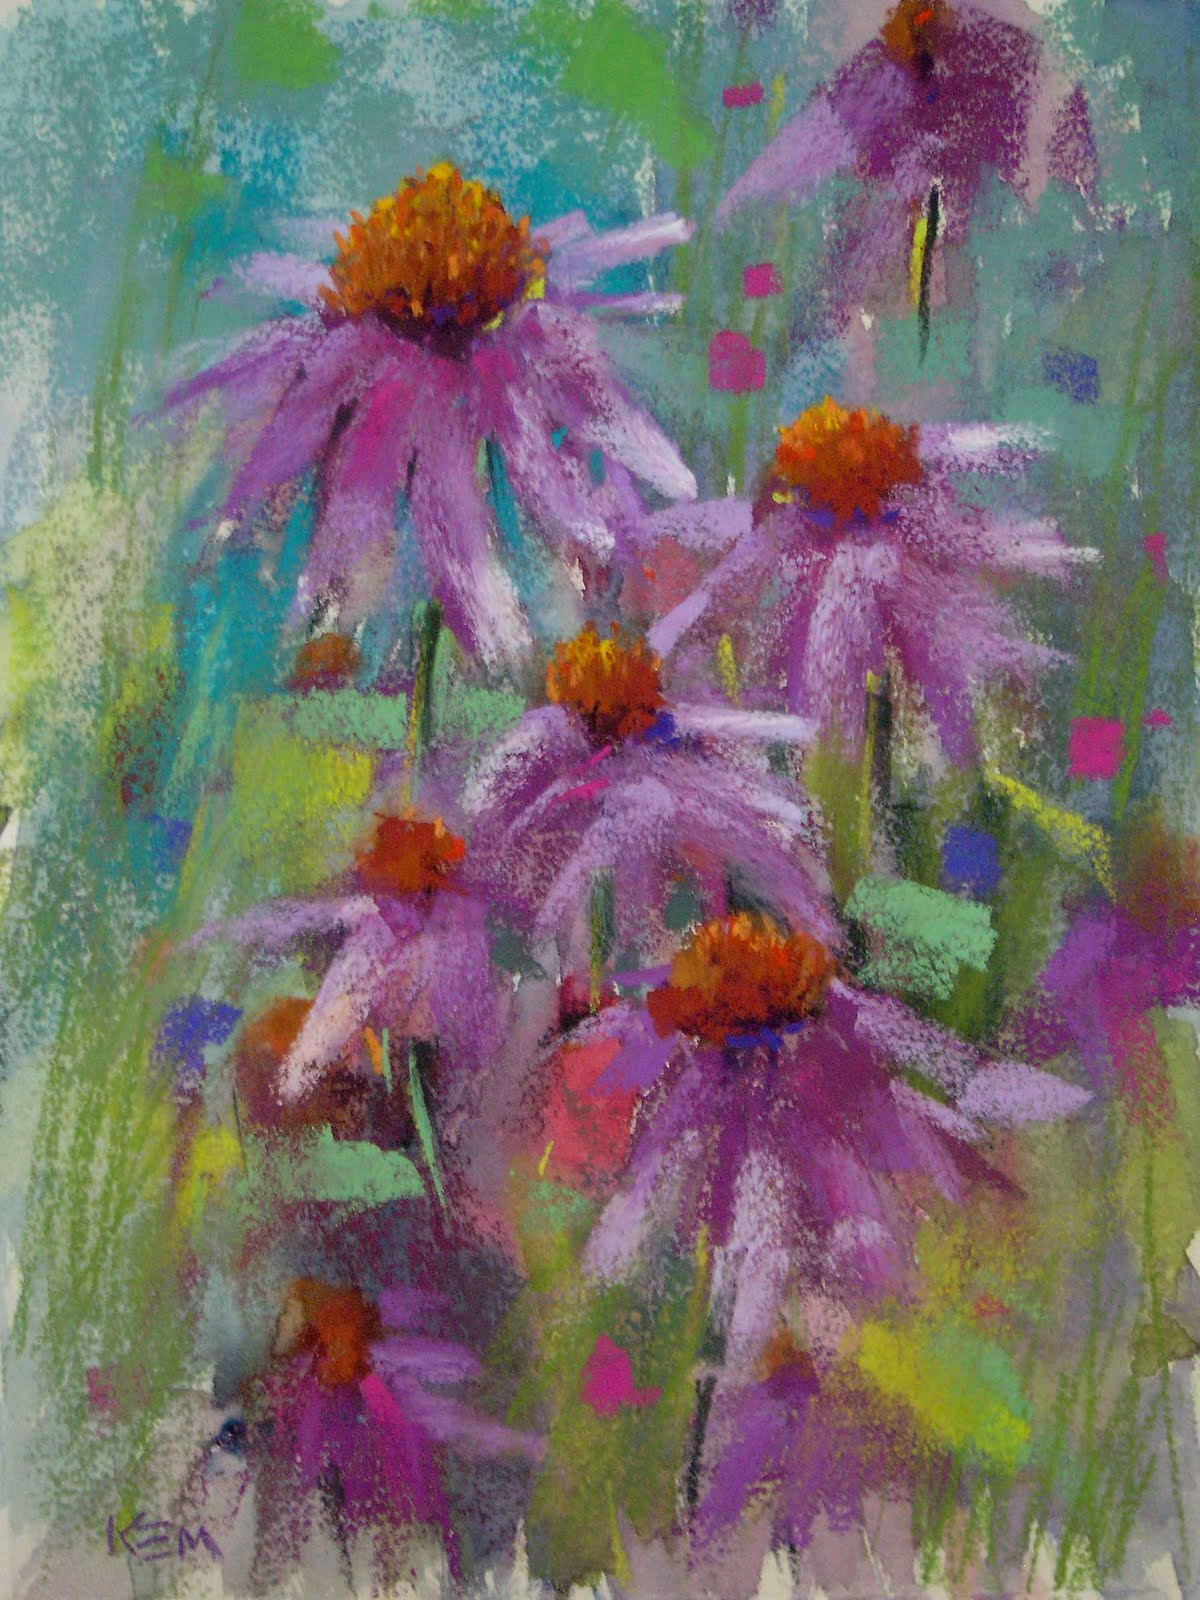 """Purple Coneflowers 9x12 pastel"" original fine art by Karen Margulis"